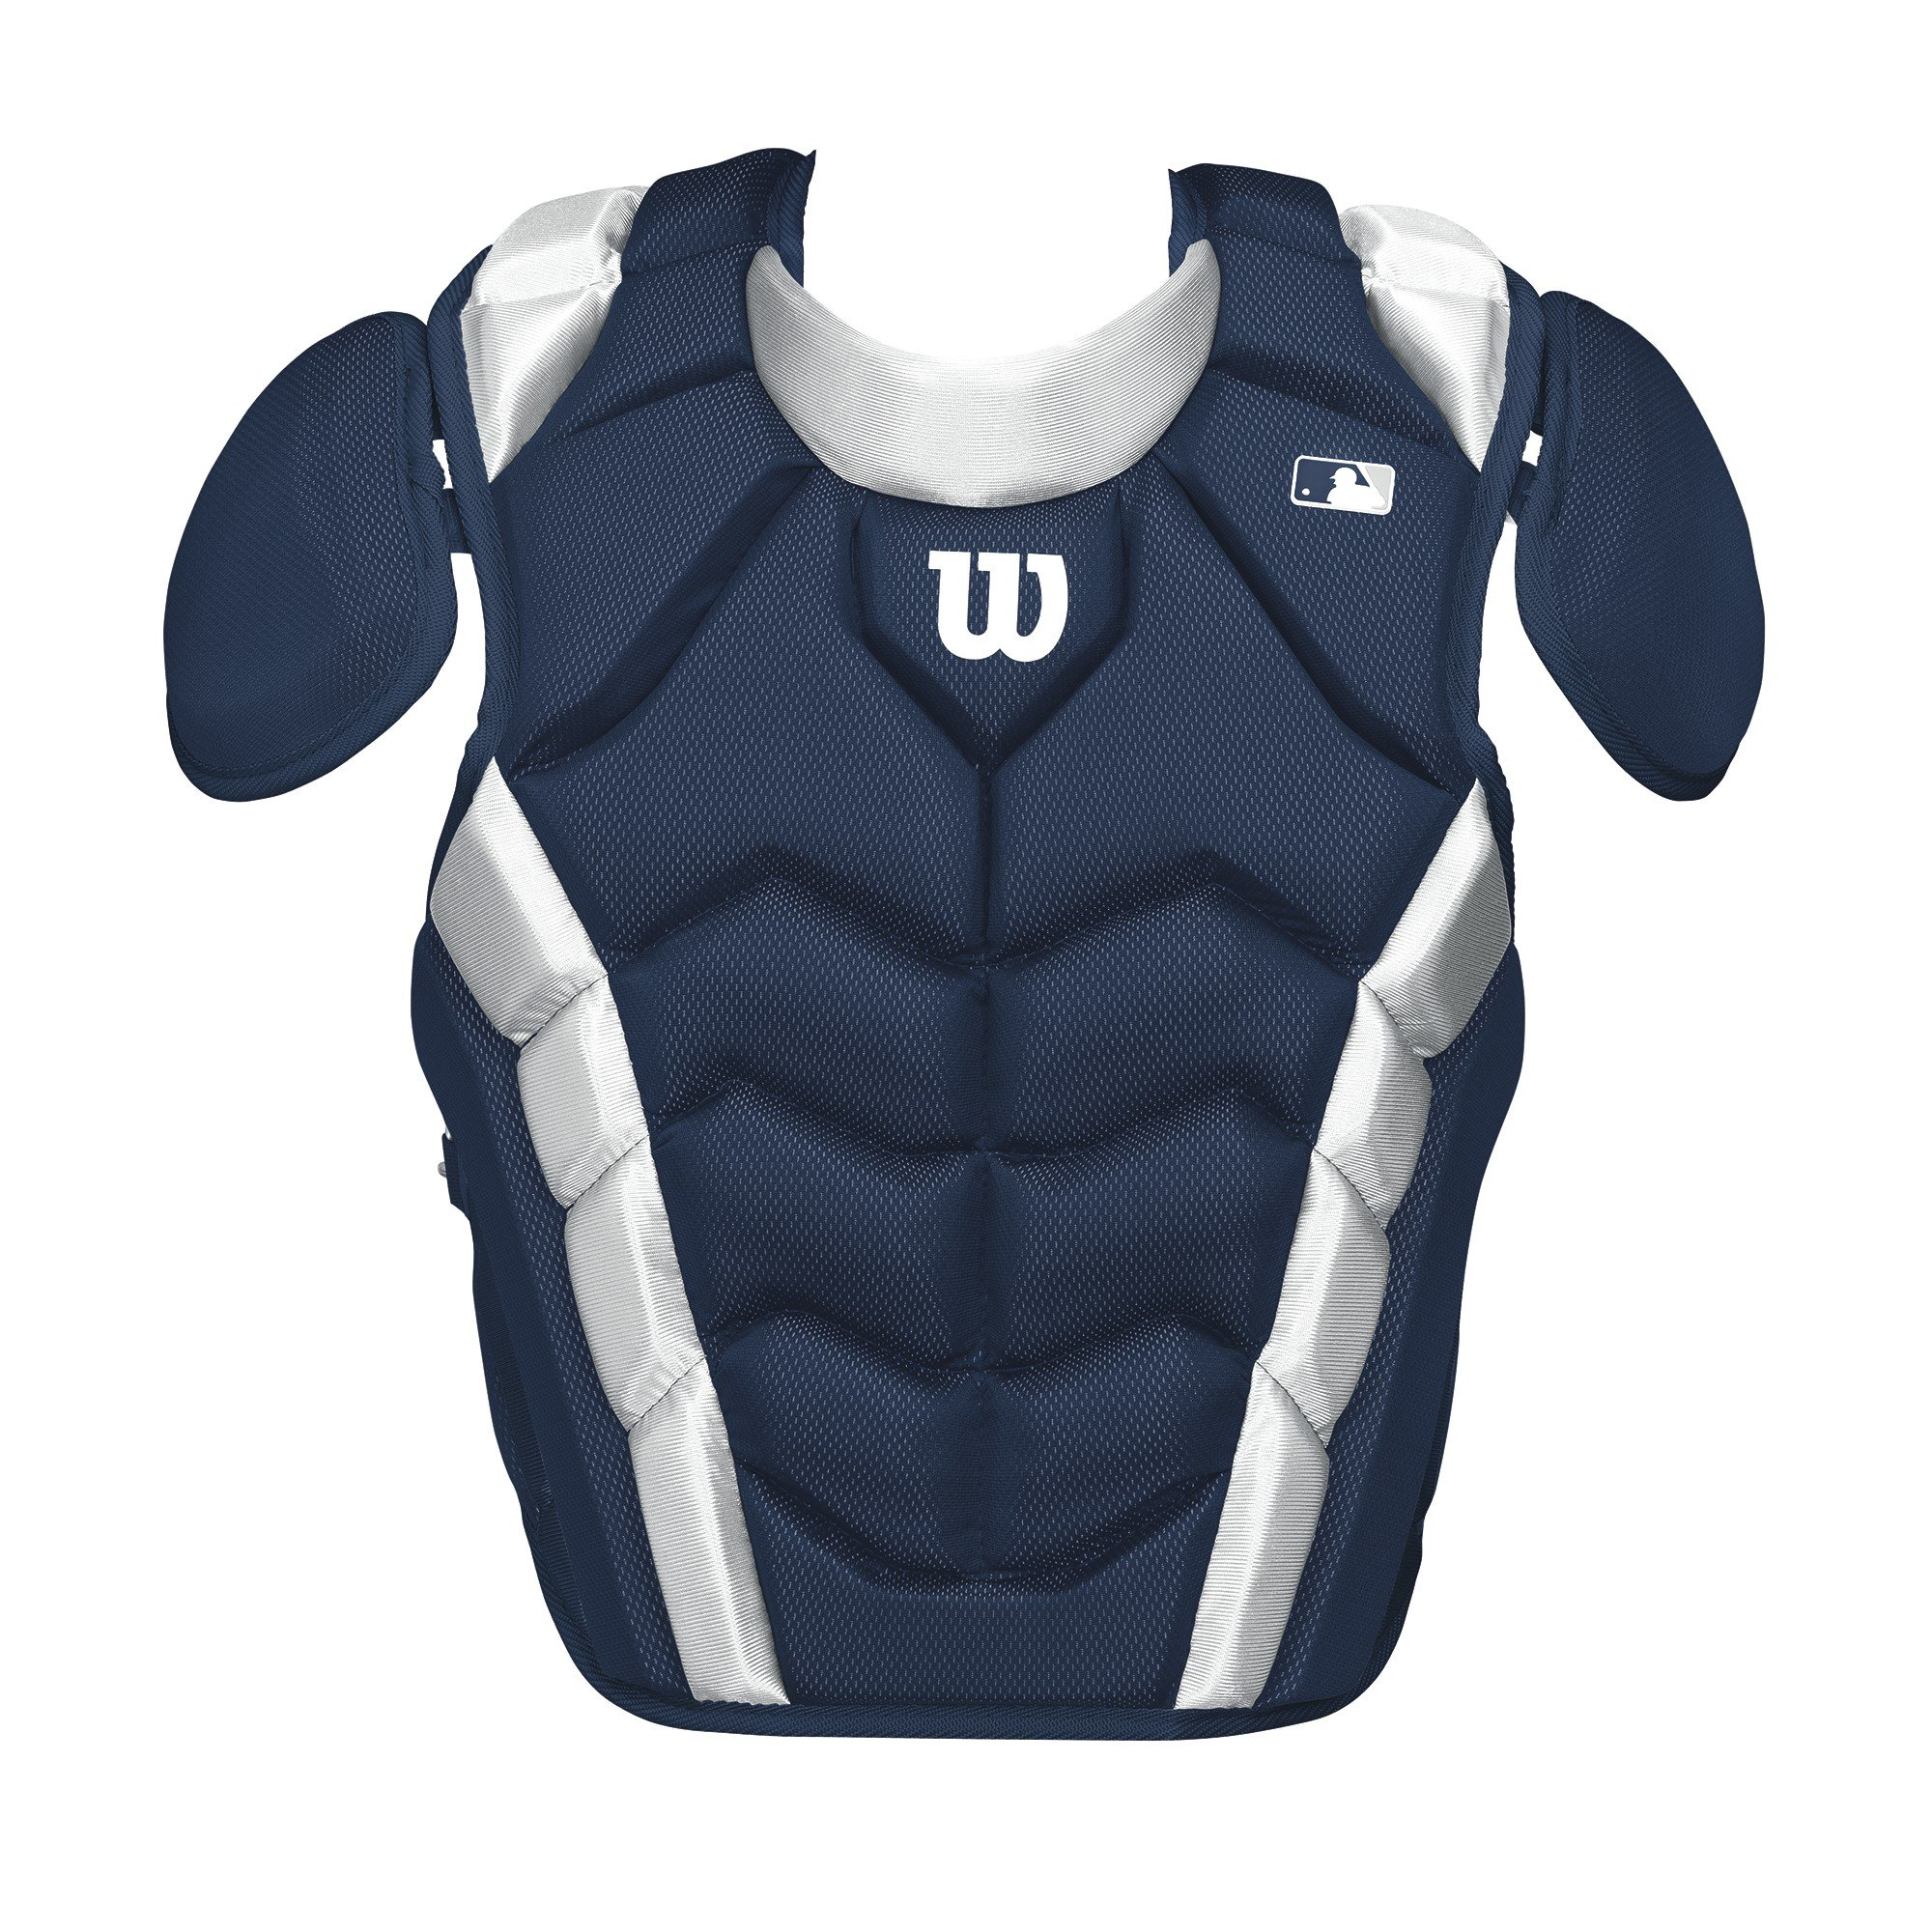 Wilson Pro Stock Chest Protector, Navy, 15.5''